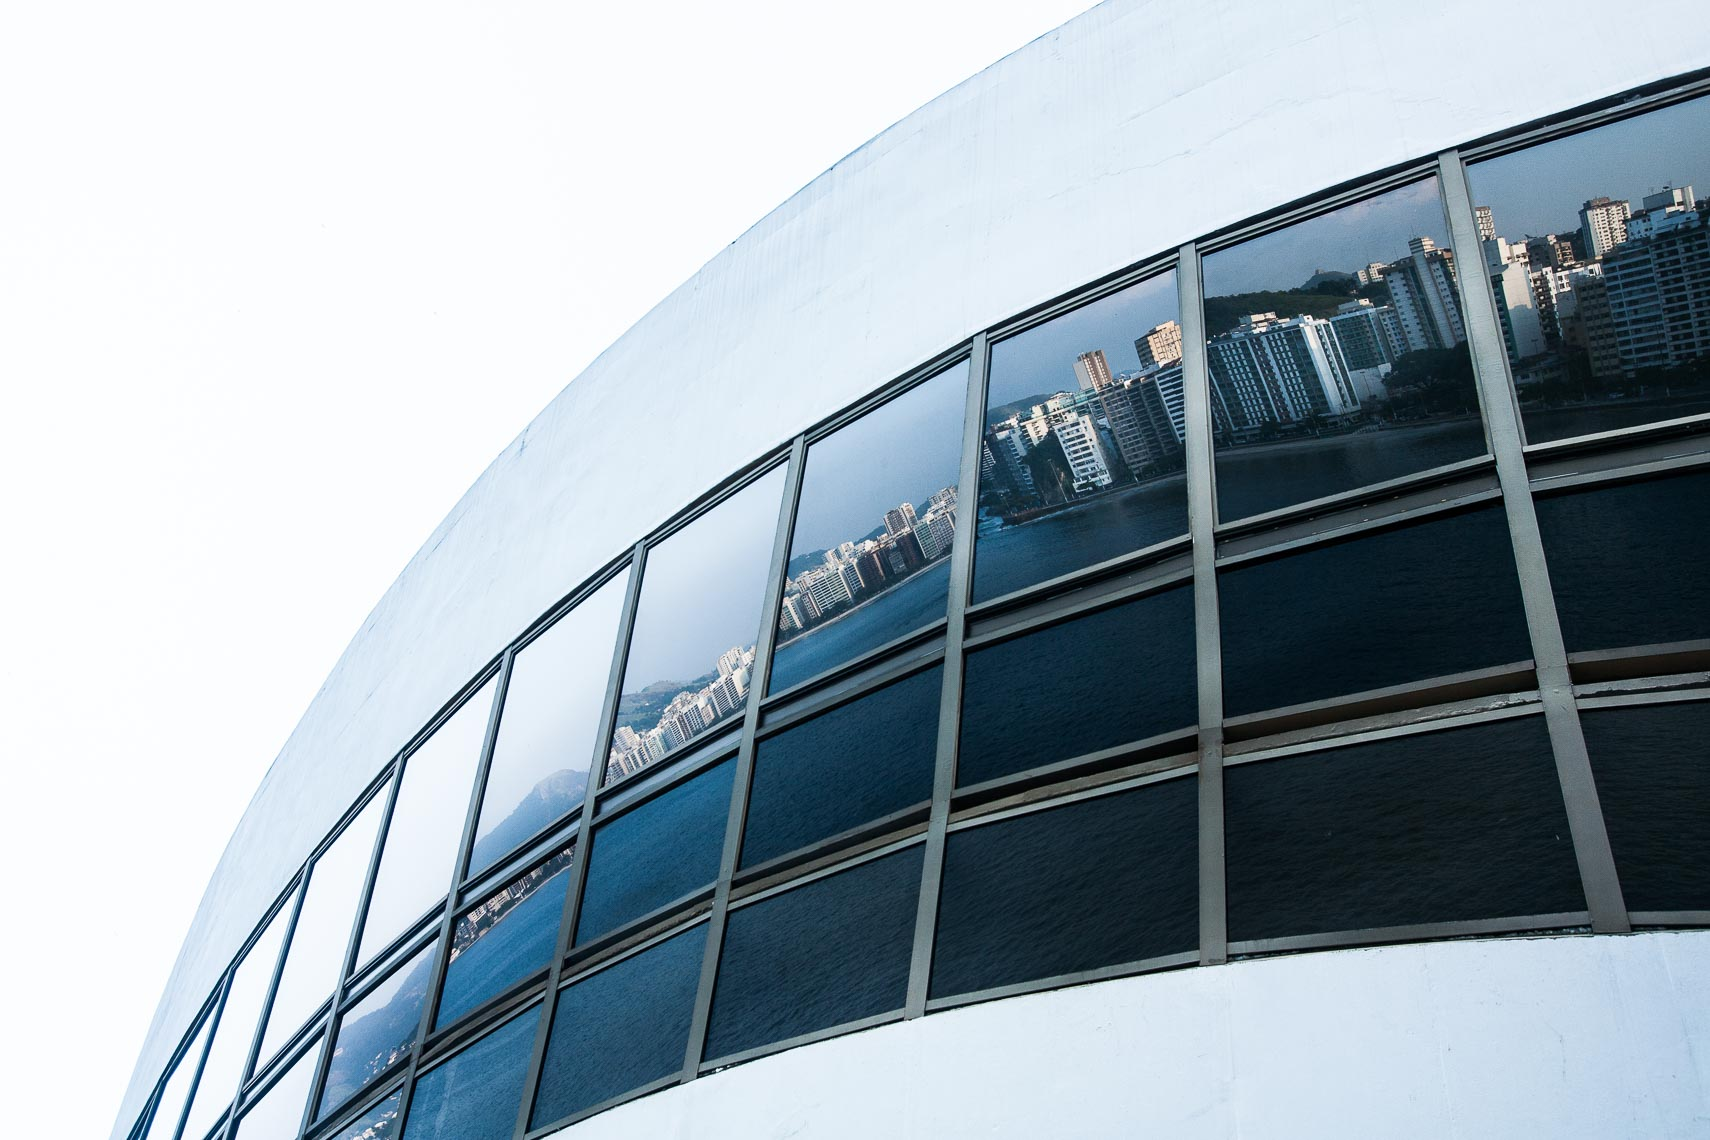 Urban landscape reflected in glass of curved building